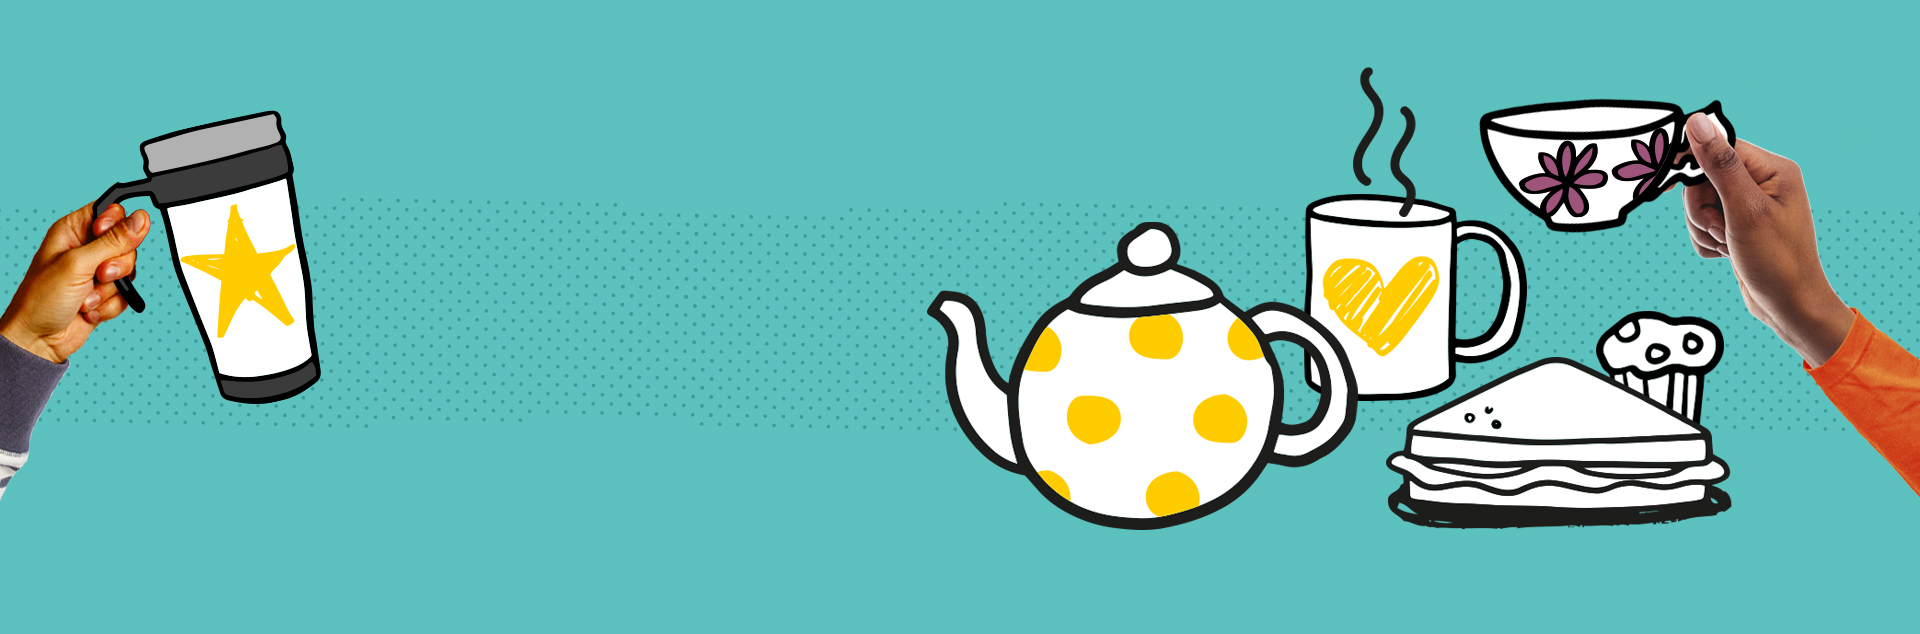 Illustrations of tea pot, steaming mug, sandwich and cup on blue background